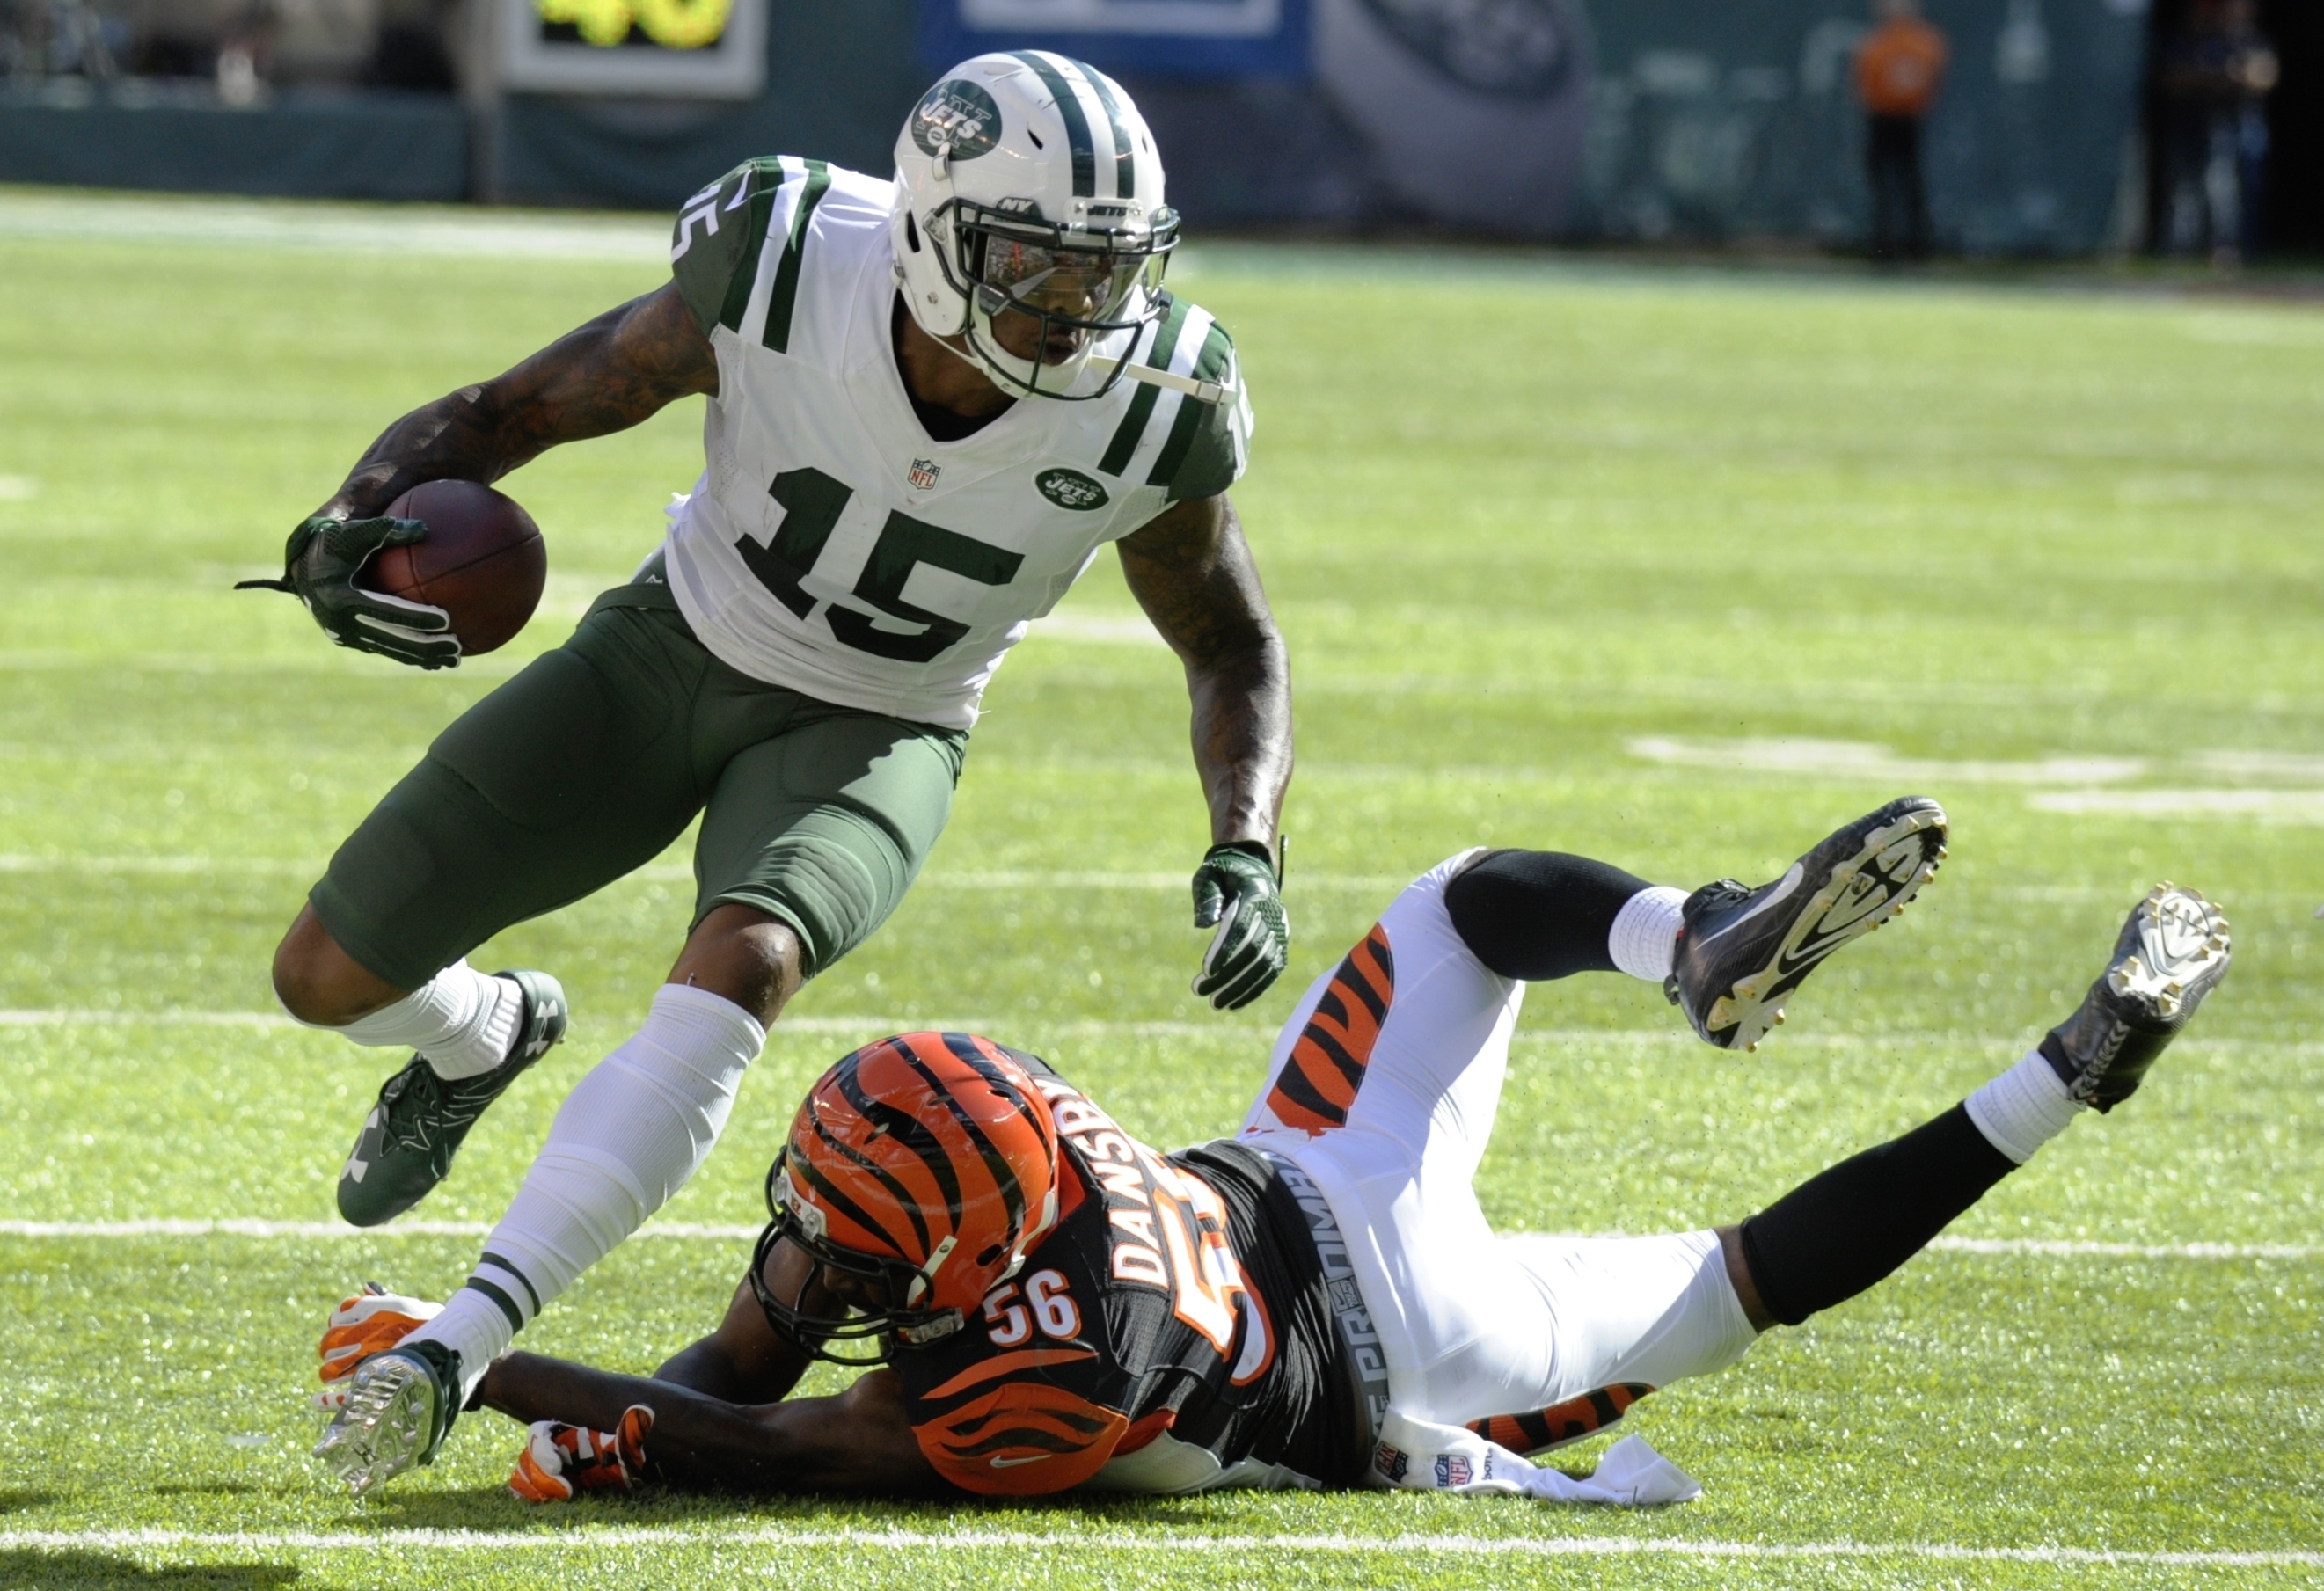 New York Jets wide receiver Brandon Marshall (15) runs past Cincinnati Bengals' Karlos Dansby (56) during the second half of an NFL football game Sunday, Sept. 11, 2016 in East Rutherford, N.J. (AP Photo/Bill Kostroun)